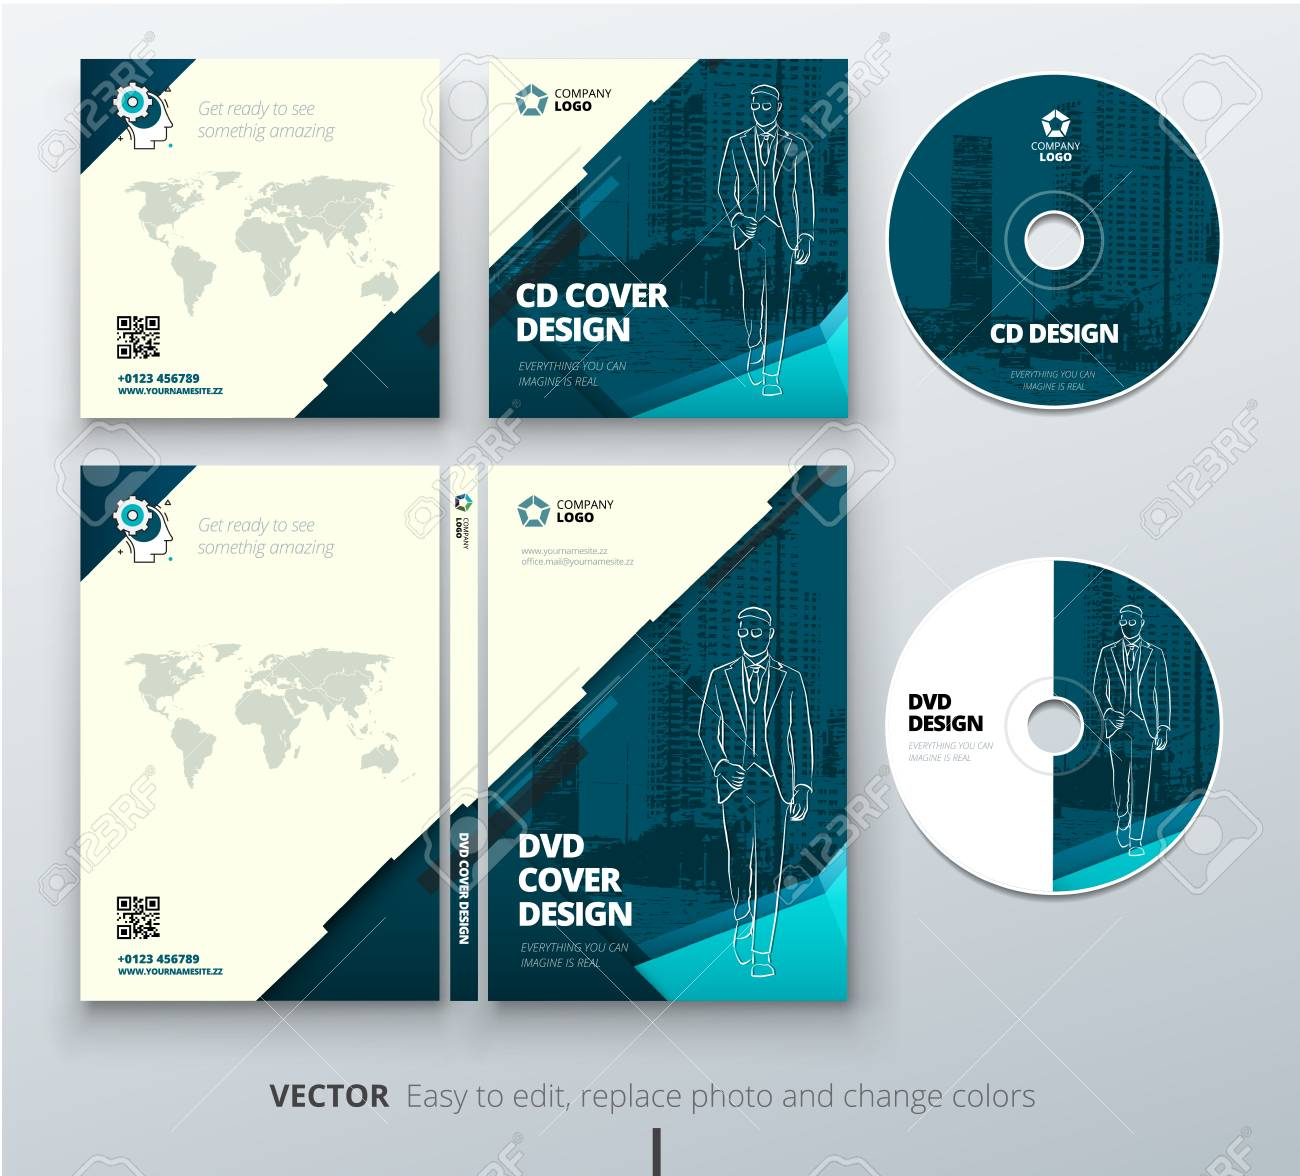 cd envelope dvd case design teal corporate business template